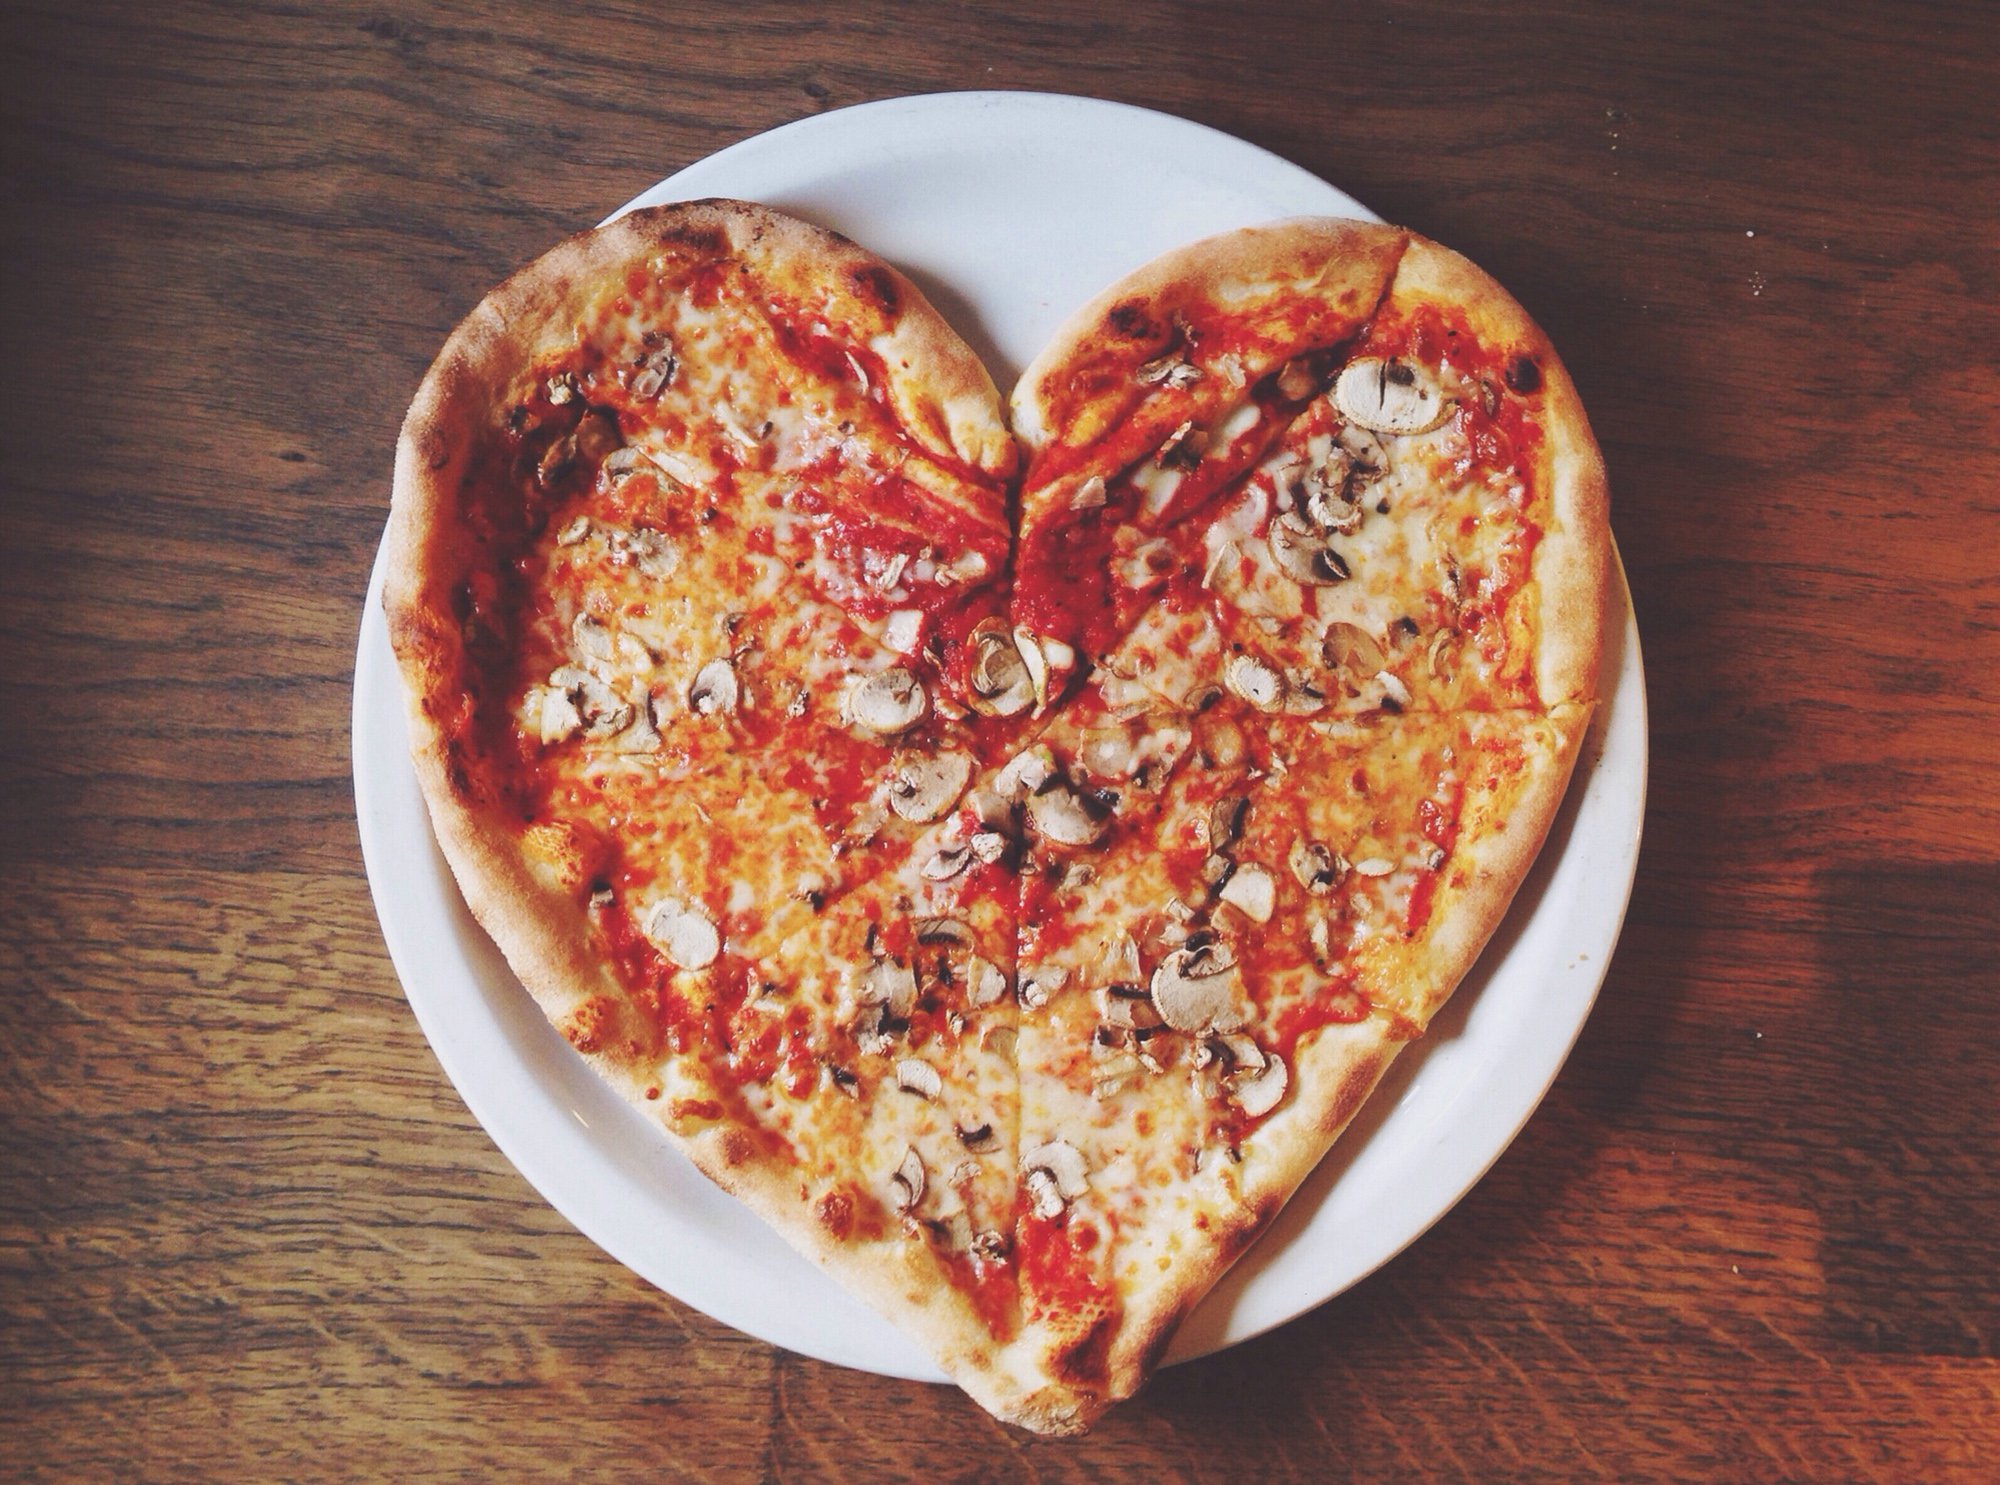 Close-up overhead view of heart shape pizza